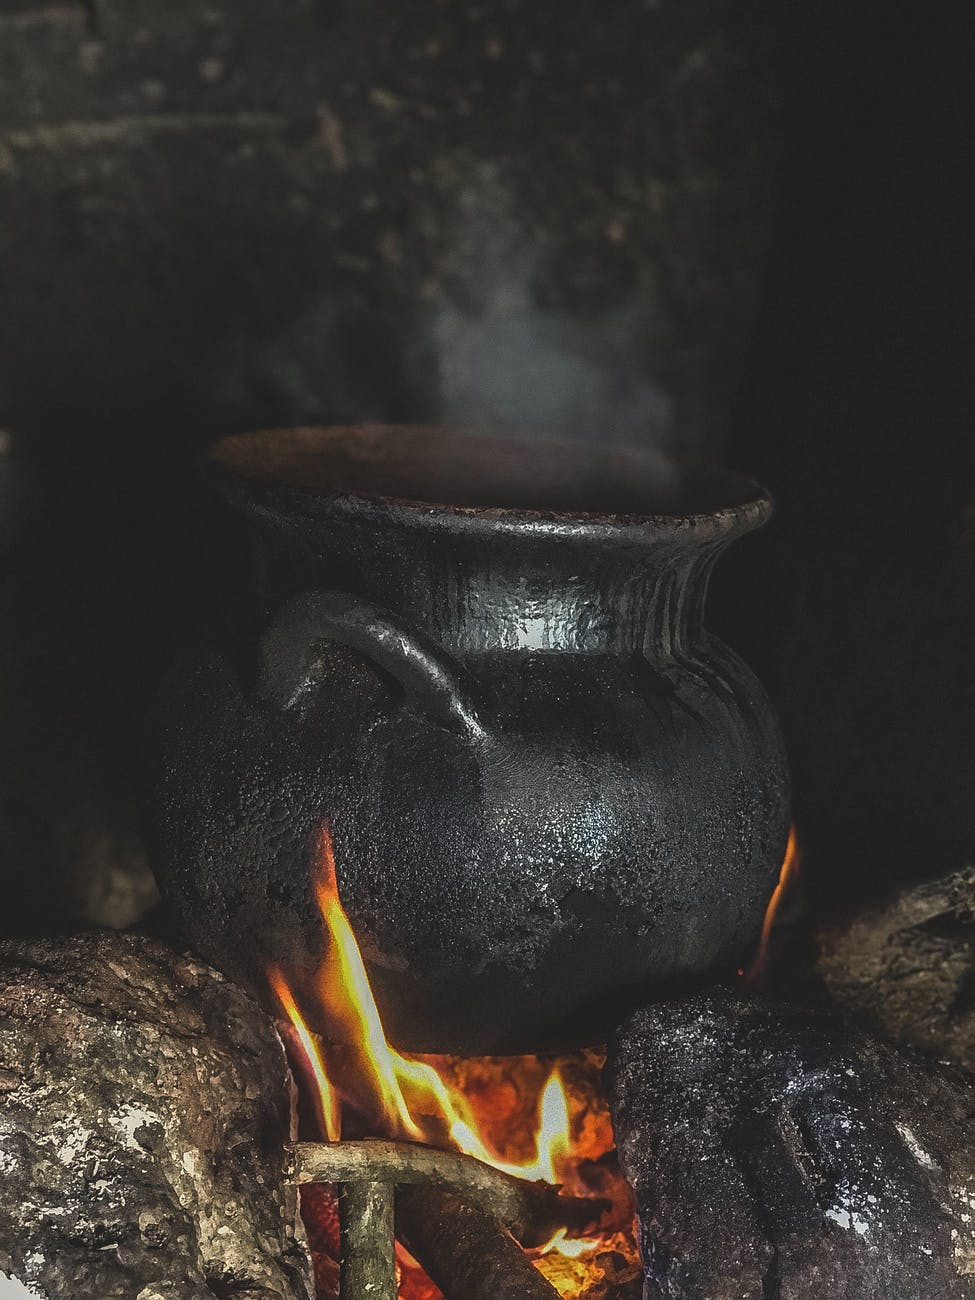 A photo of a cauldron over an open flame.